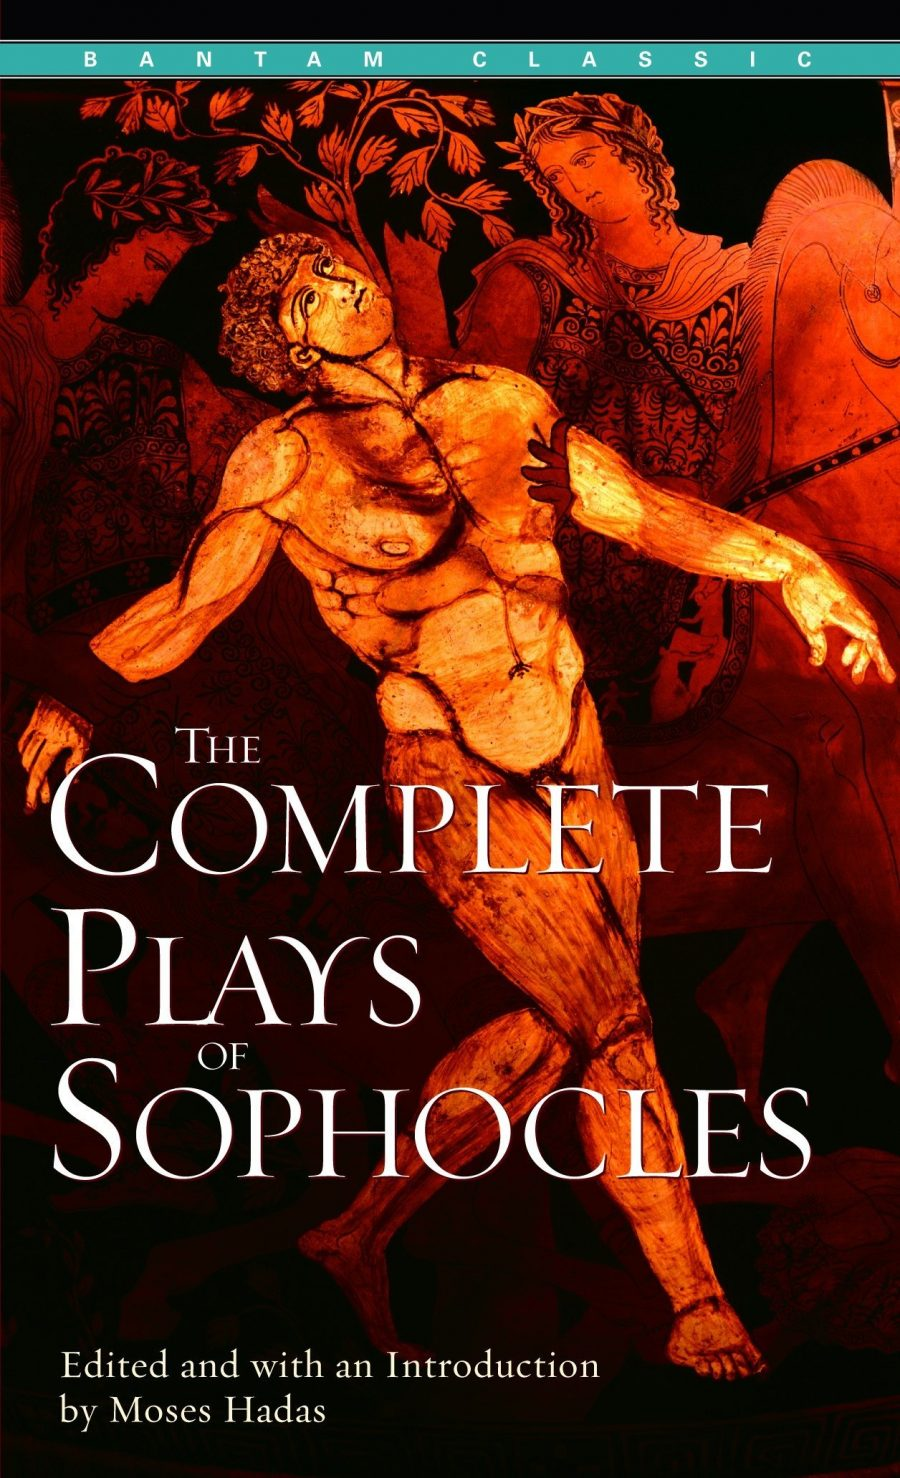 The Complete Plays Of Sophocles (Translation)